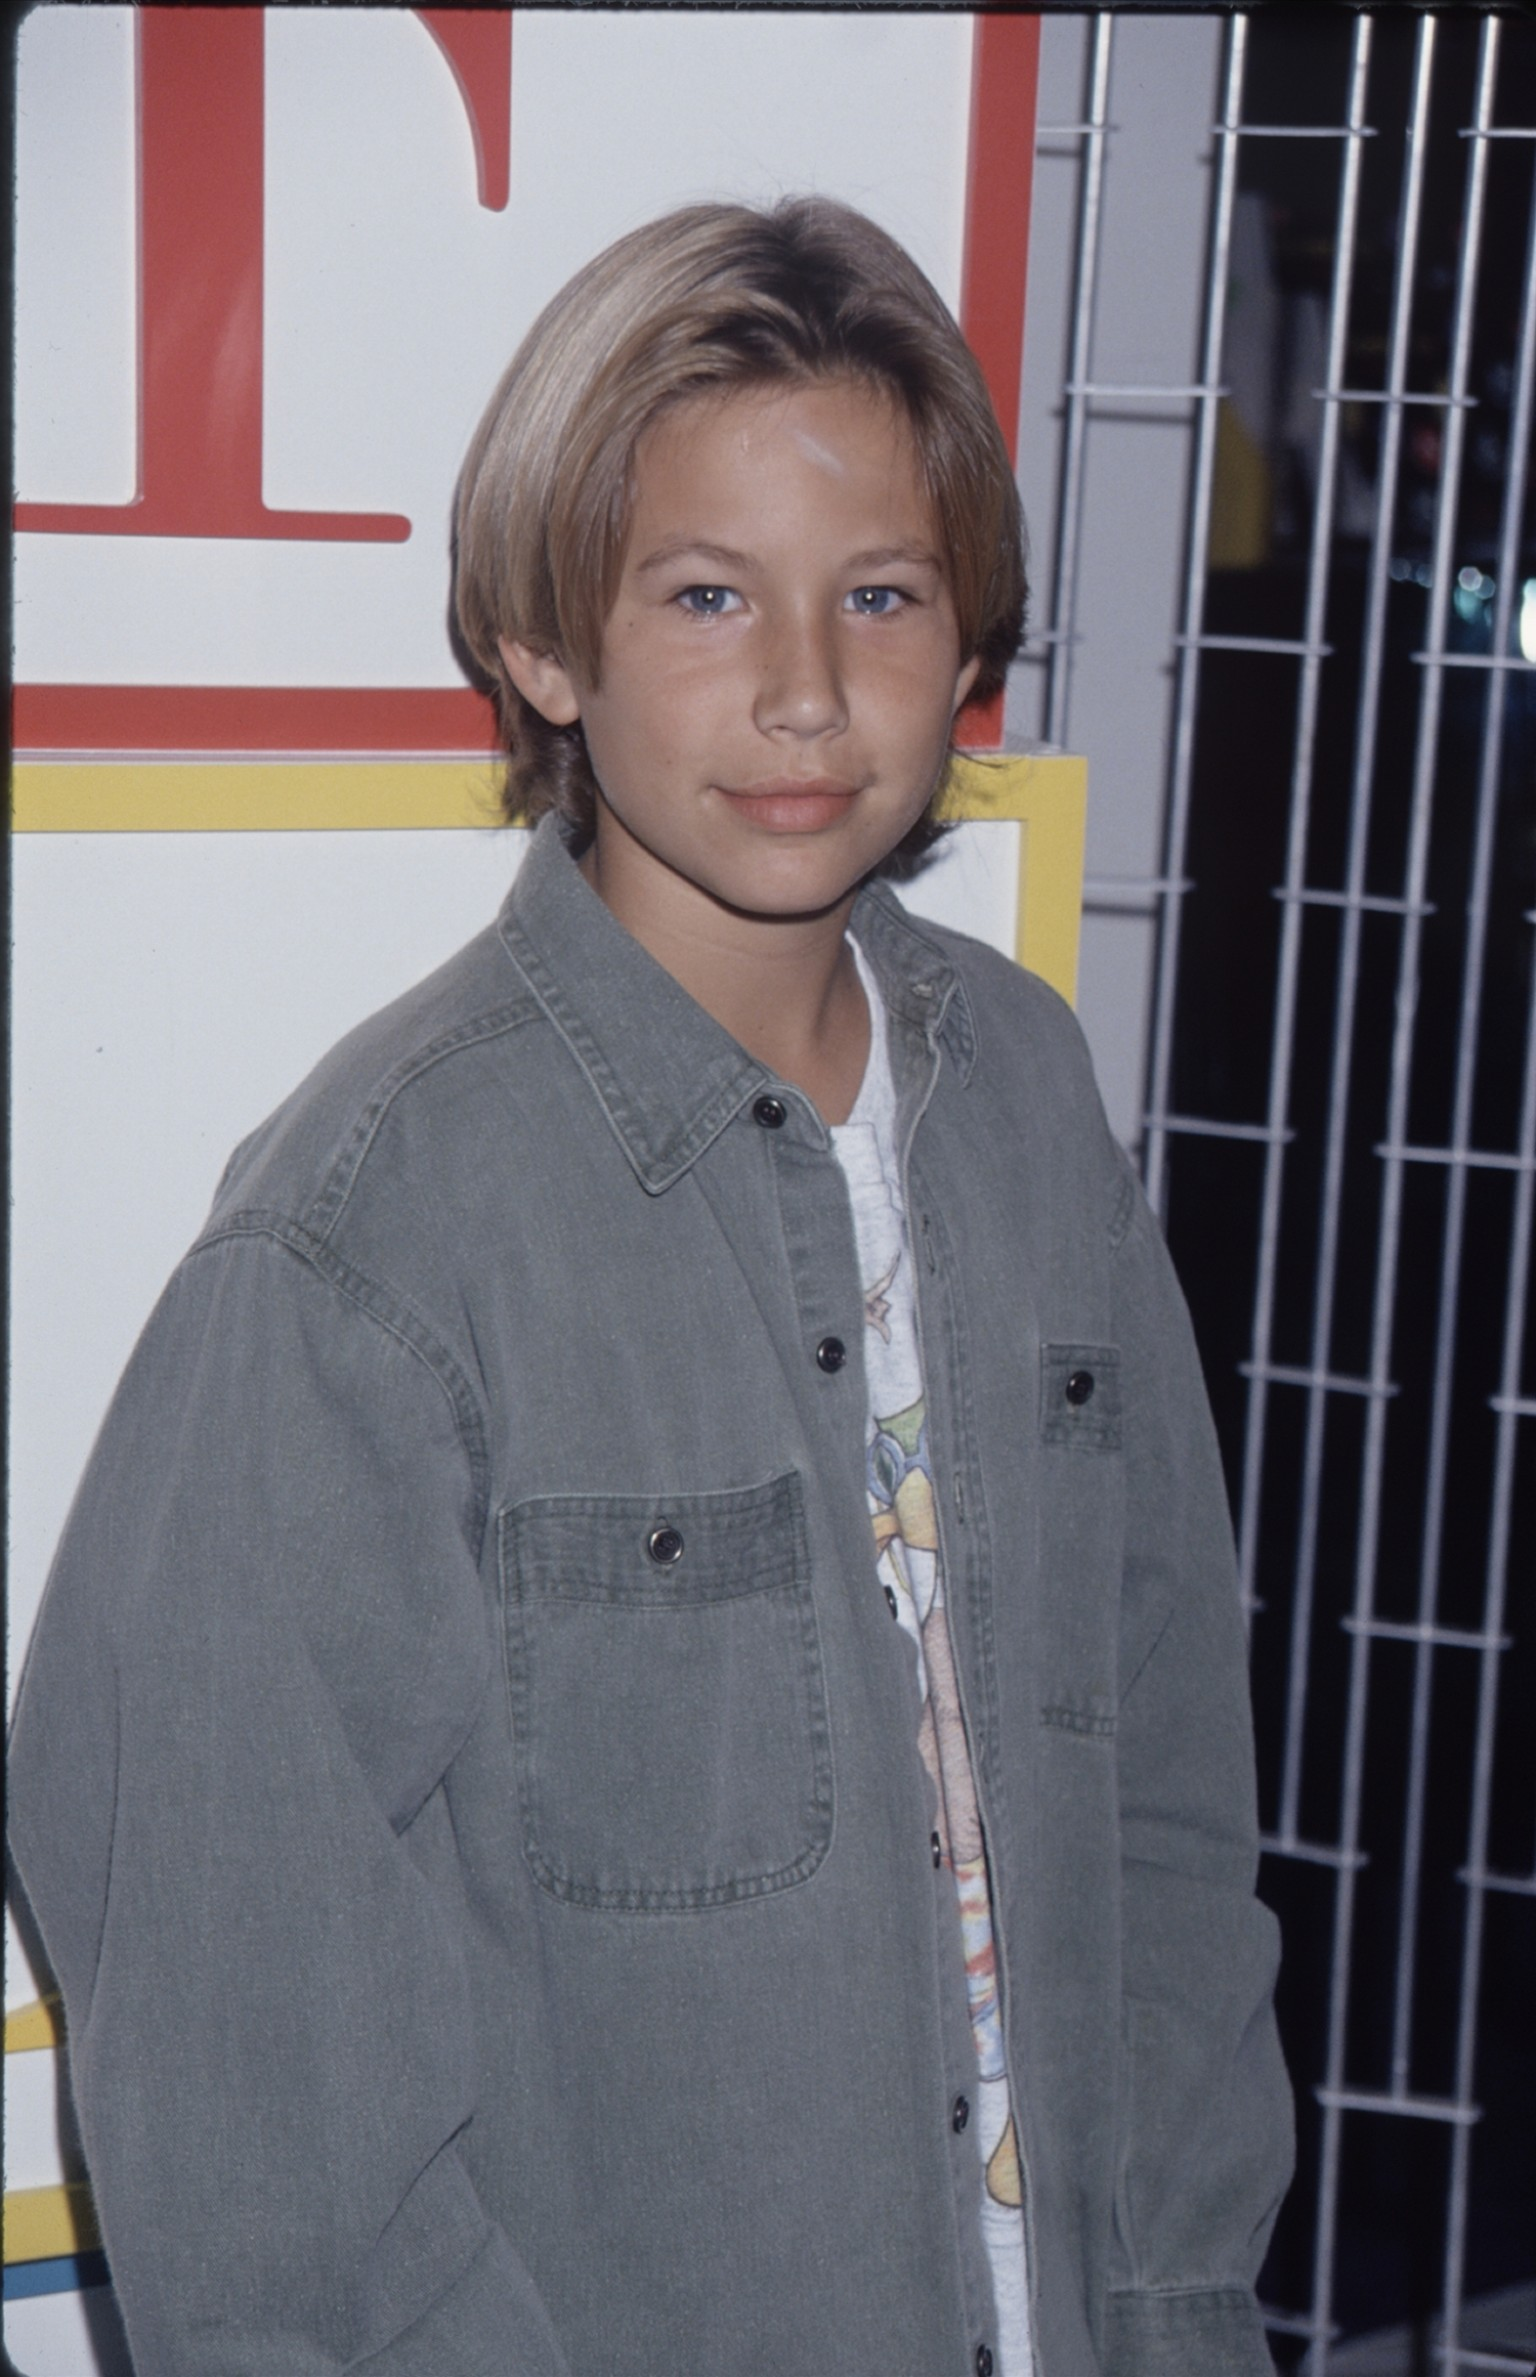 jonathan taylor thomas bonesjonathan taylor thomas bones, jonathan taylor thomas 2016, jonathan taylor thomas height, jonathan taylor thomas now and then, jonathan taylor thomas born, jonathan taylor thomas bones lyrics, jonathan taylor thomas instagram, jonathan taylor thomas last man standing, jonathan taylor thomas, jonathan taylor thomas now, jonathan taylor thomas married, jonathan taylor thomas 2014, jonathan taylor thomas twitter, jonathan taylor thomas wiki, jonathan taylor thomas common ground, jonathan taylor thomas pictures, jonathan taylor thomas dead, jonathan taylor thomas wife, jonathan taylor thomas net worth, jonathan taylor thomas married natalie wright